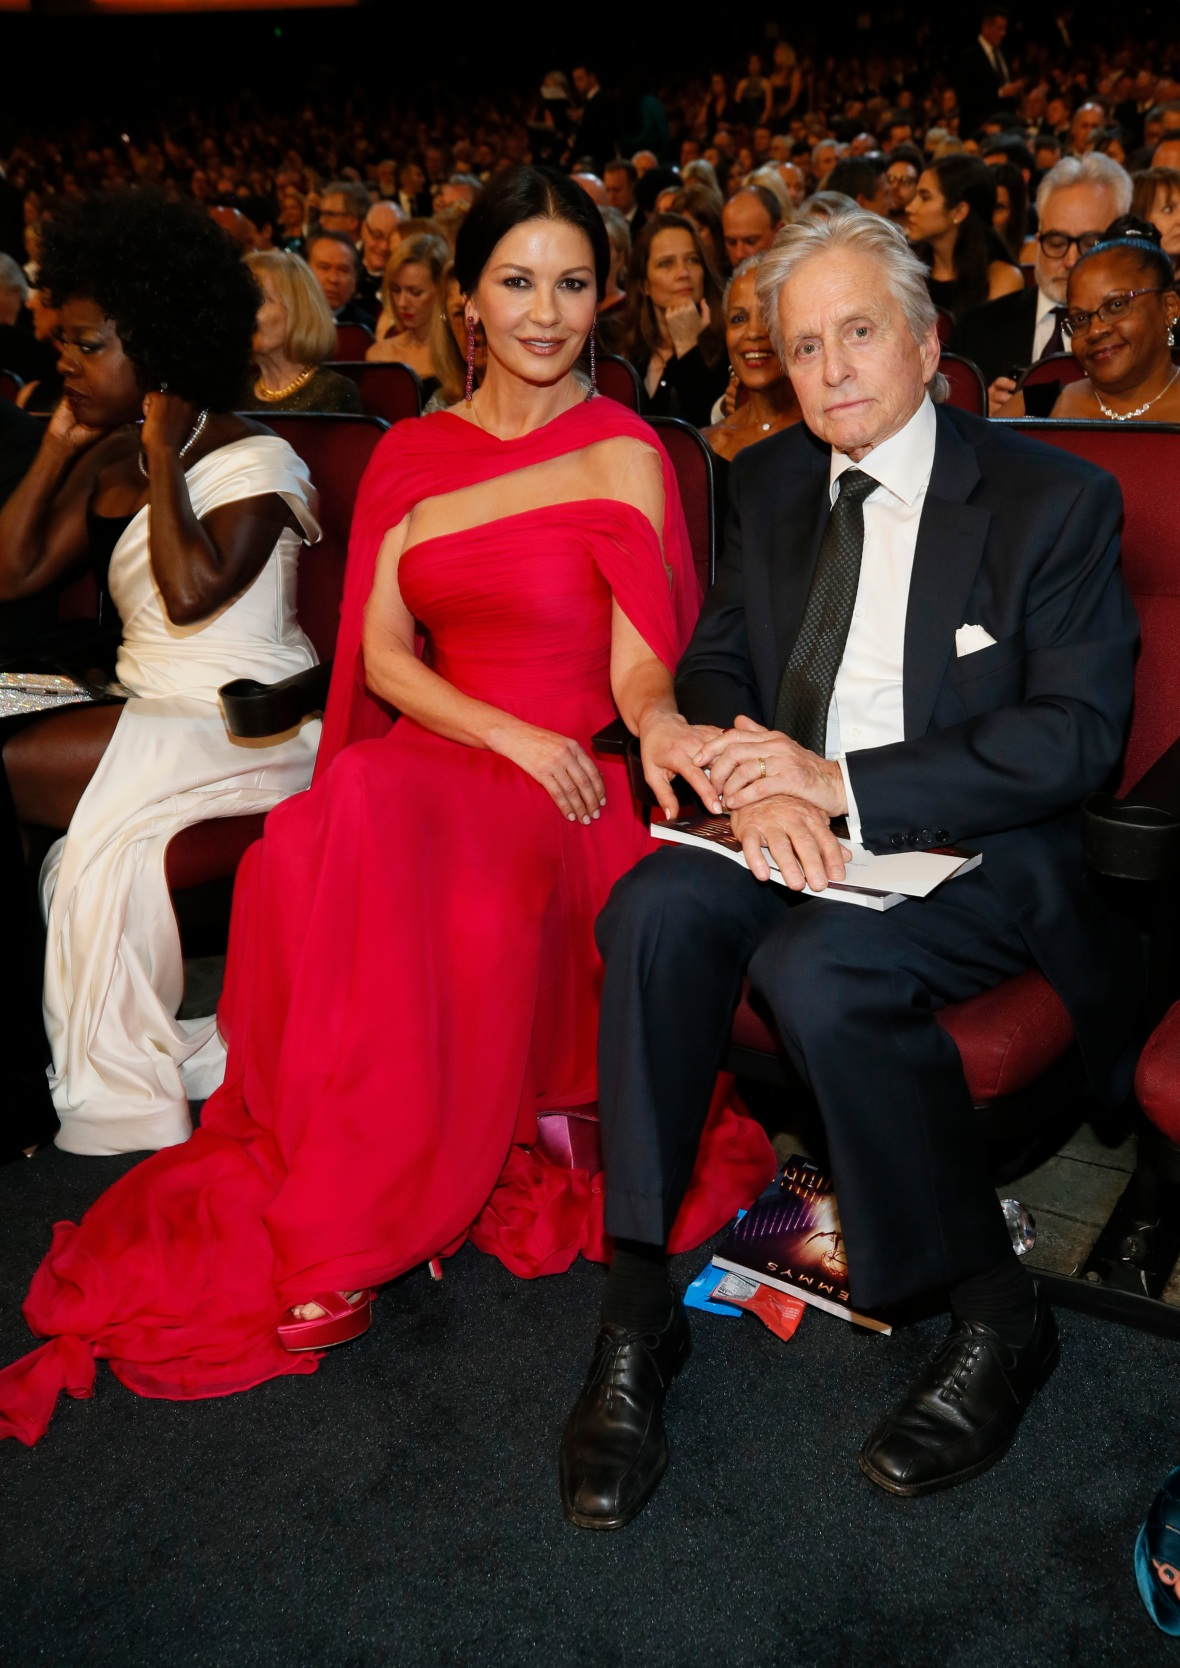 Catherine Zeta-Jones in a Red Dress and Michael Douglas in a Suit Inside the 2019 Emmys